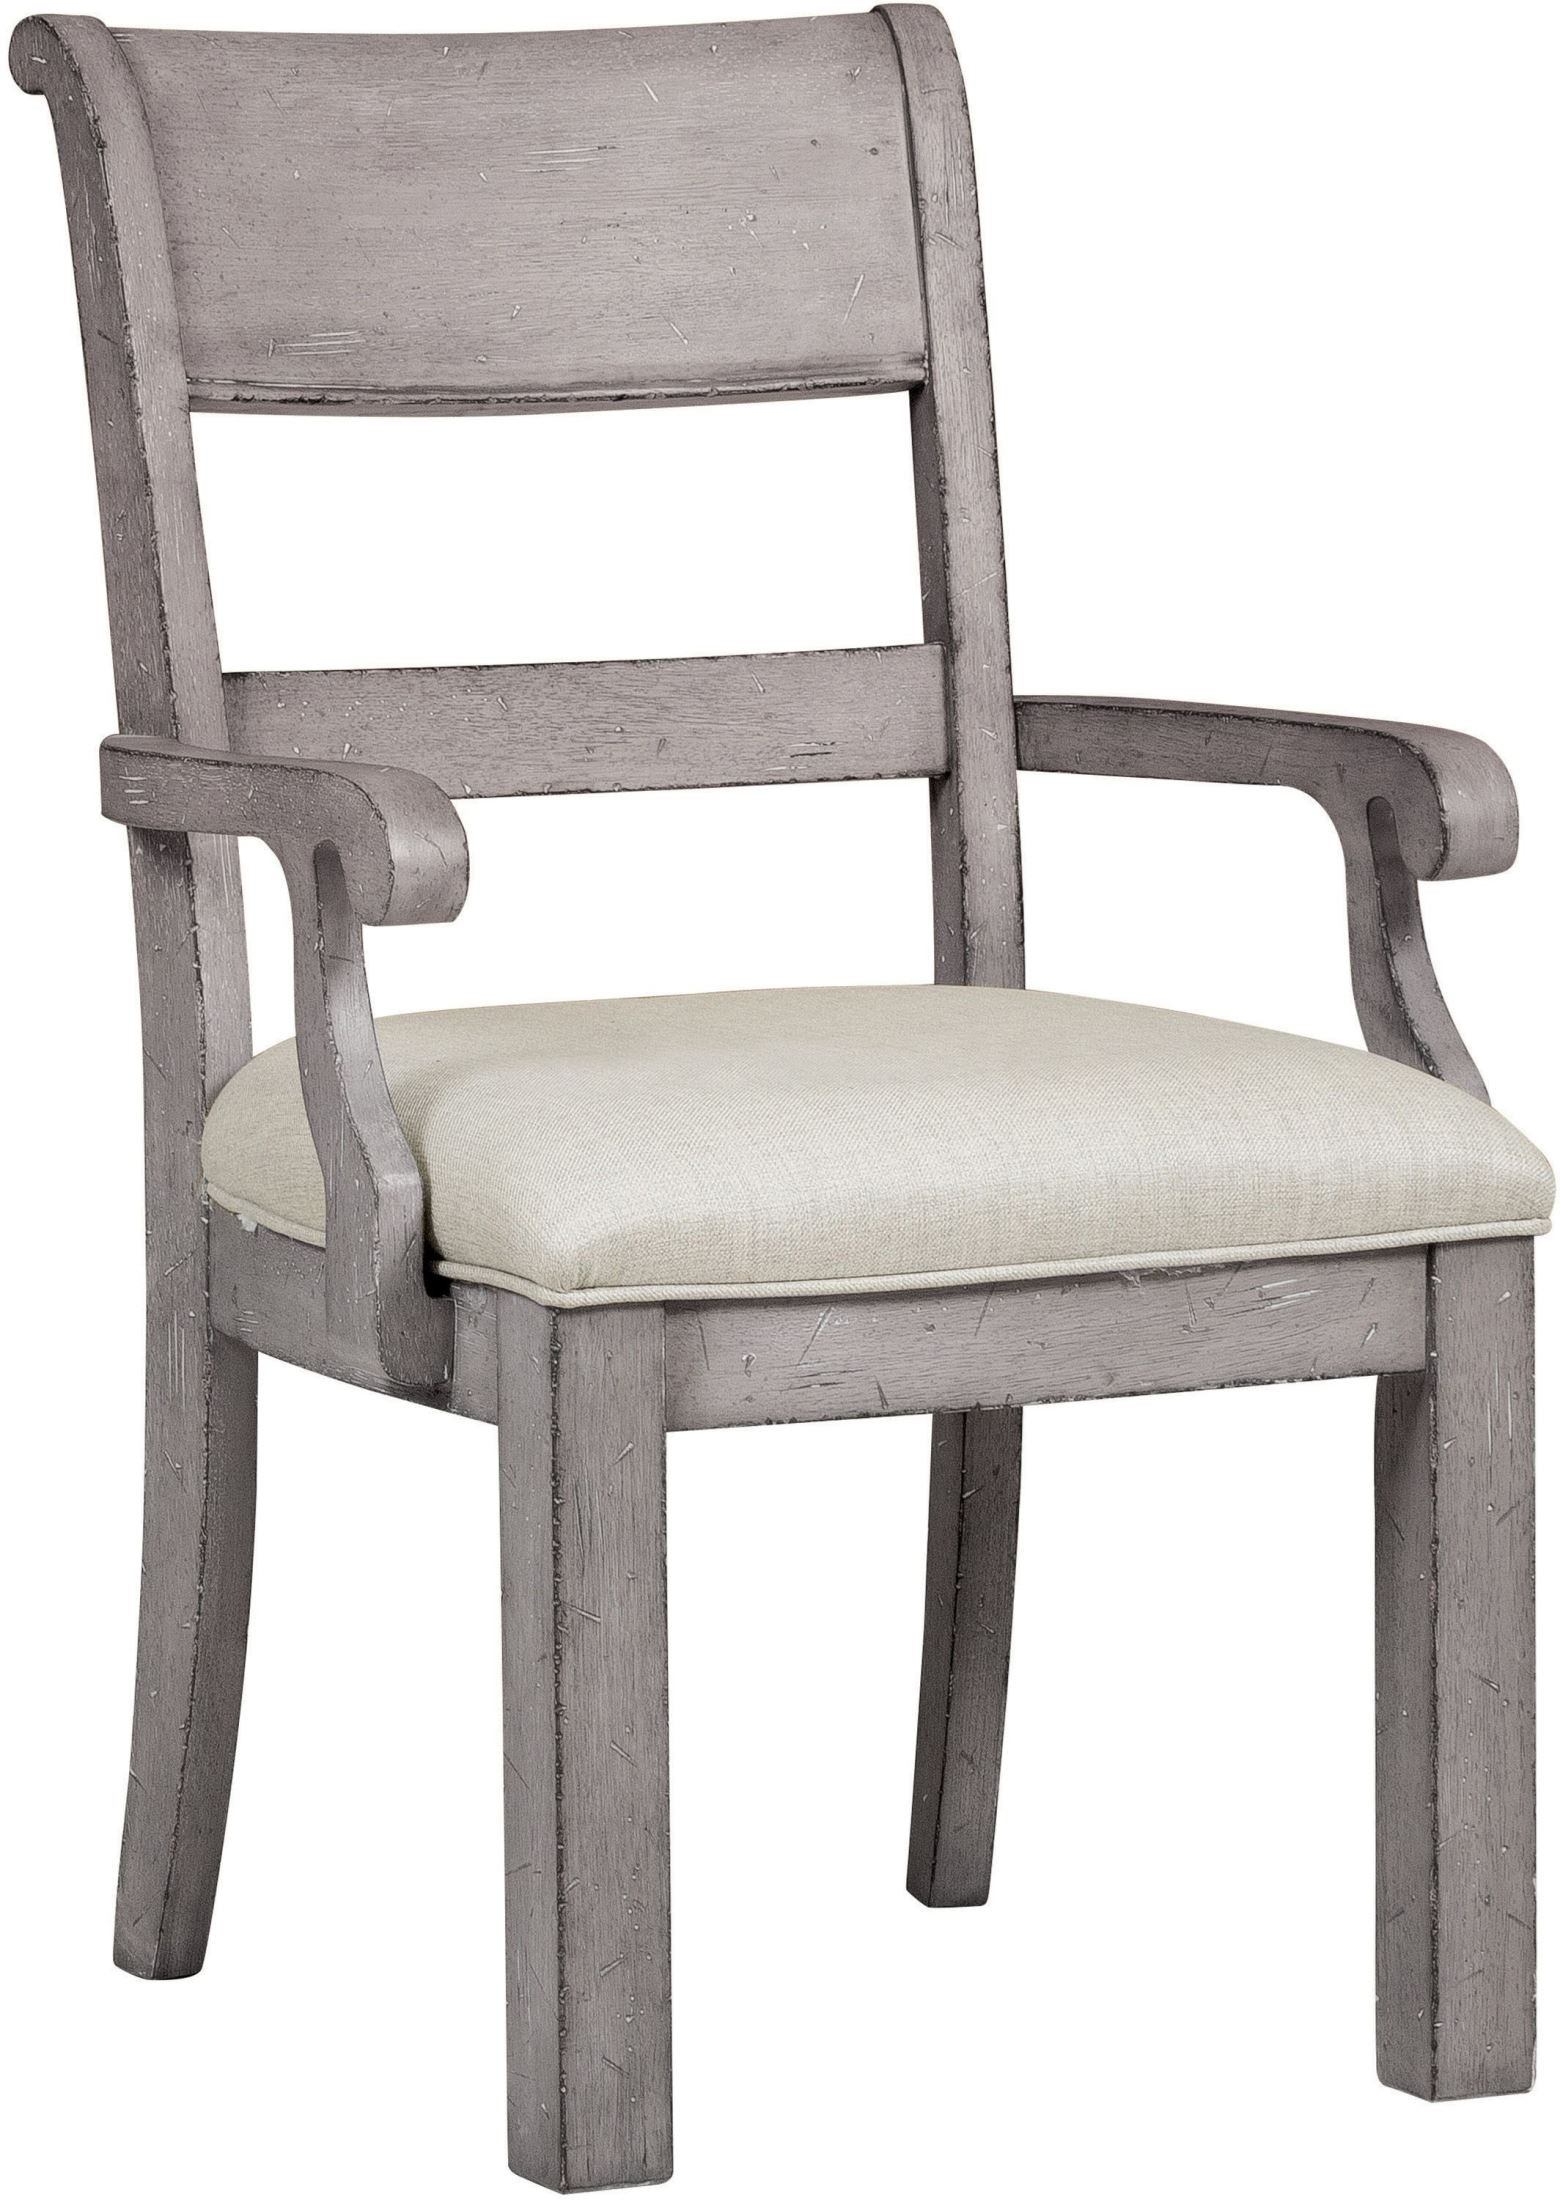 grey arm chair directors white prospect hill gray s082 155 samuel lawrence